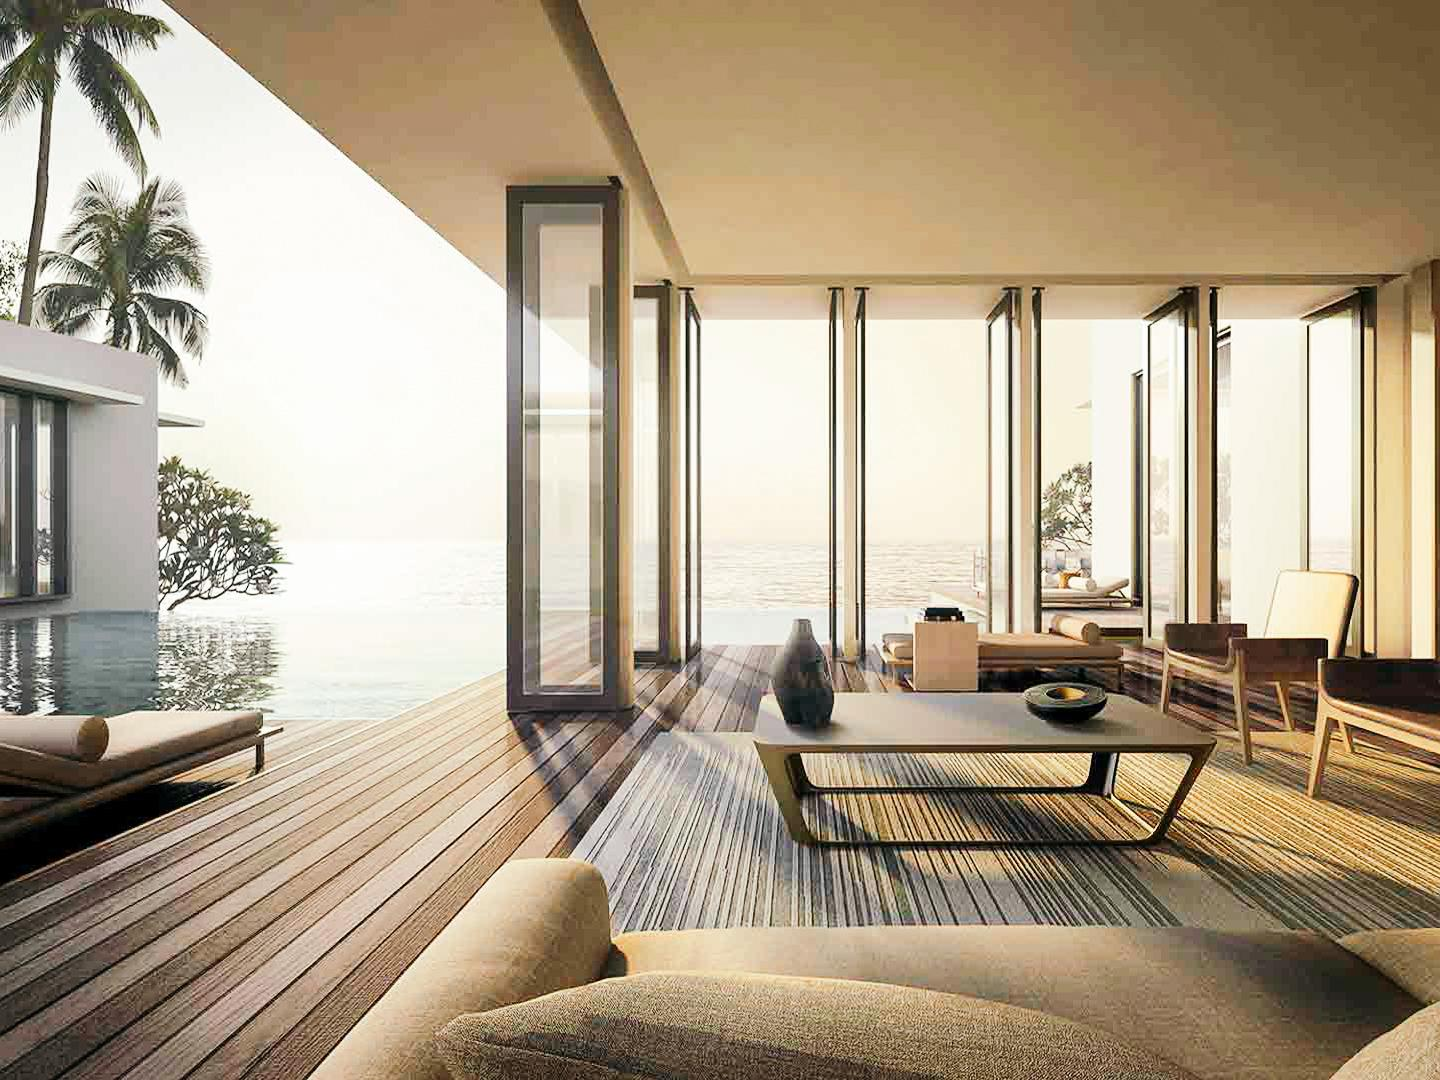 2018's Hottest New Hotel Openings Across the Globe